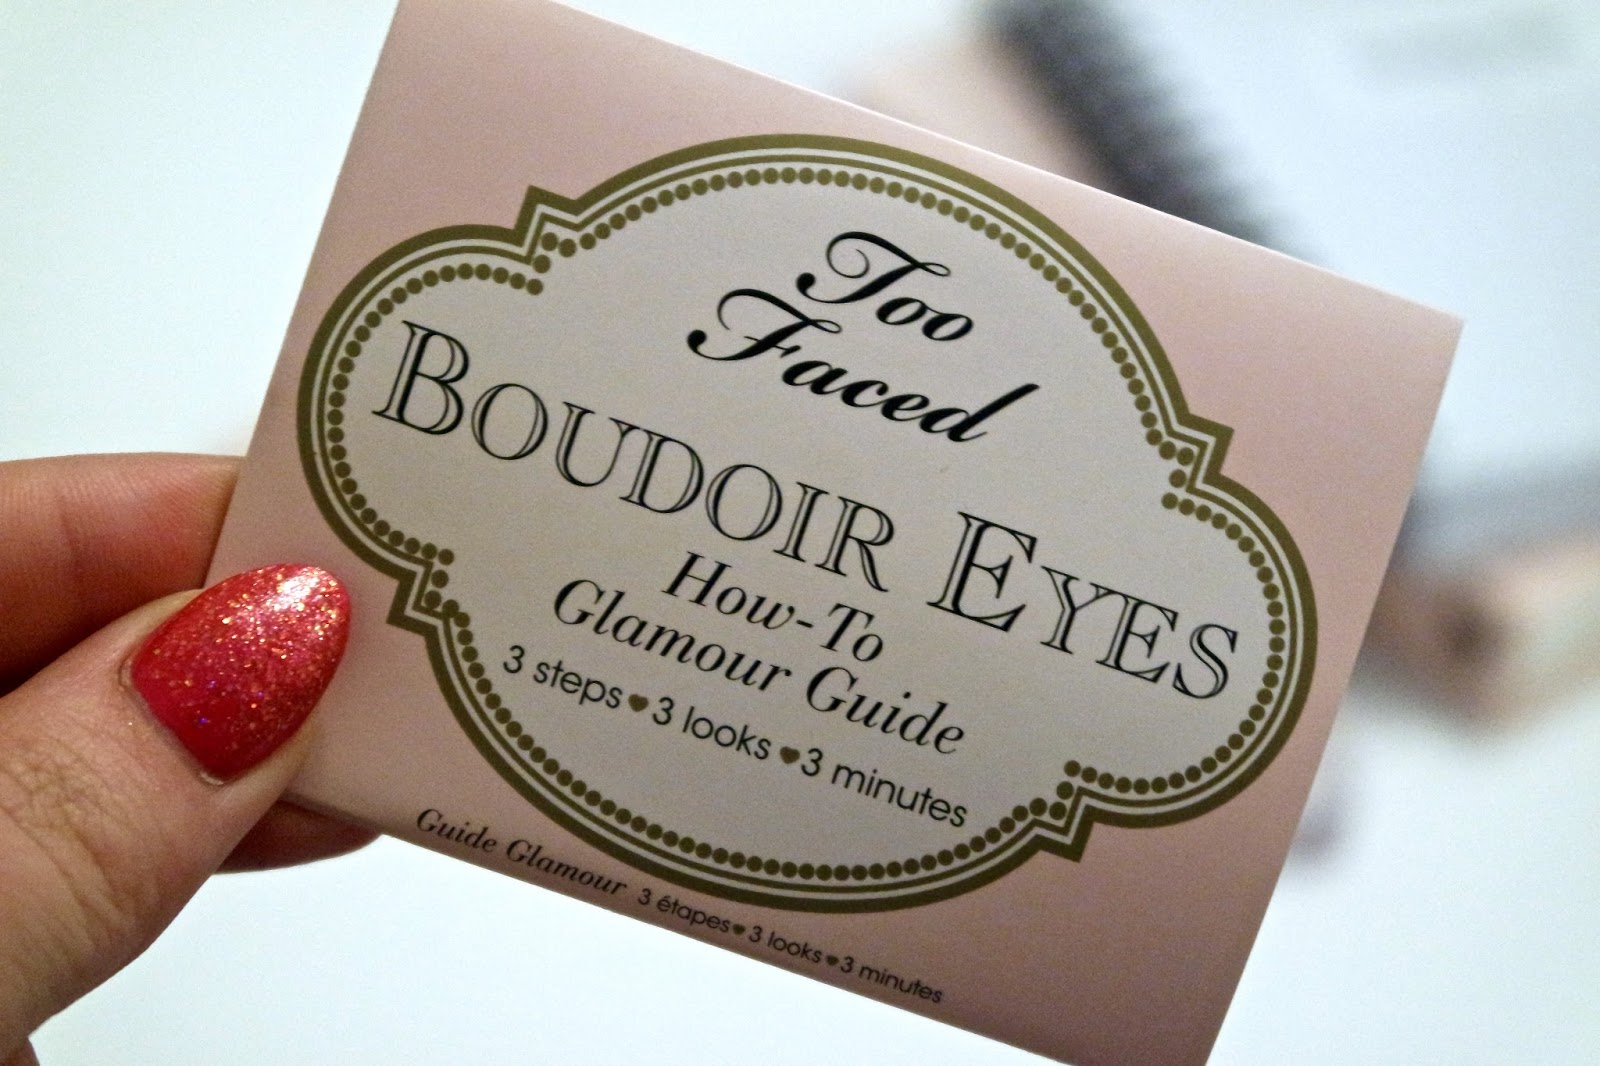 Too Faced Boudoir Eyes Palette Review